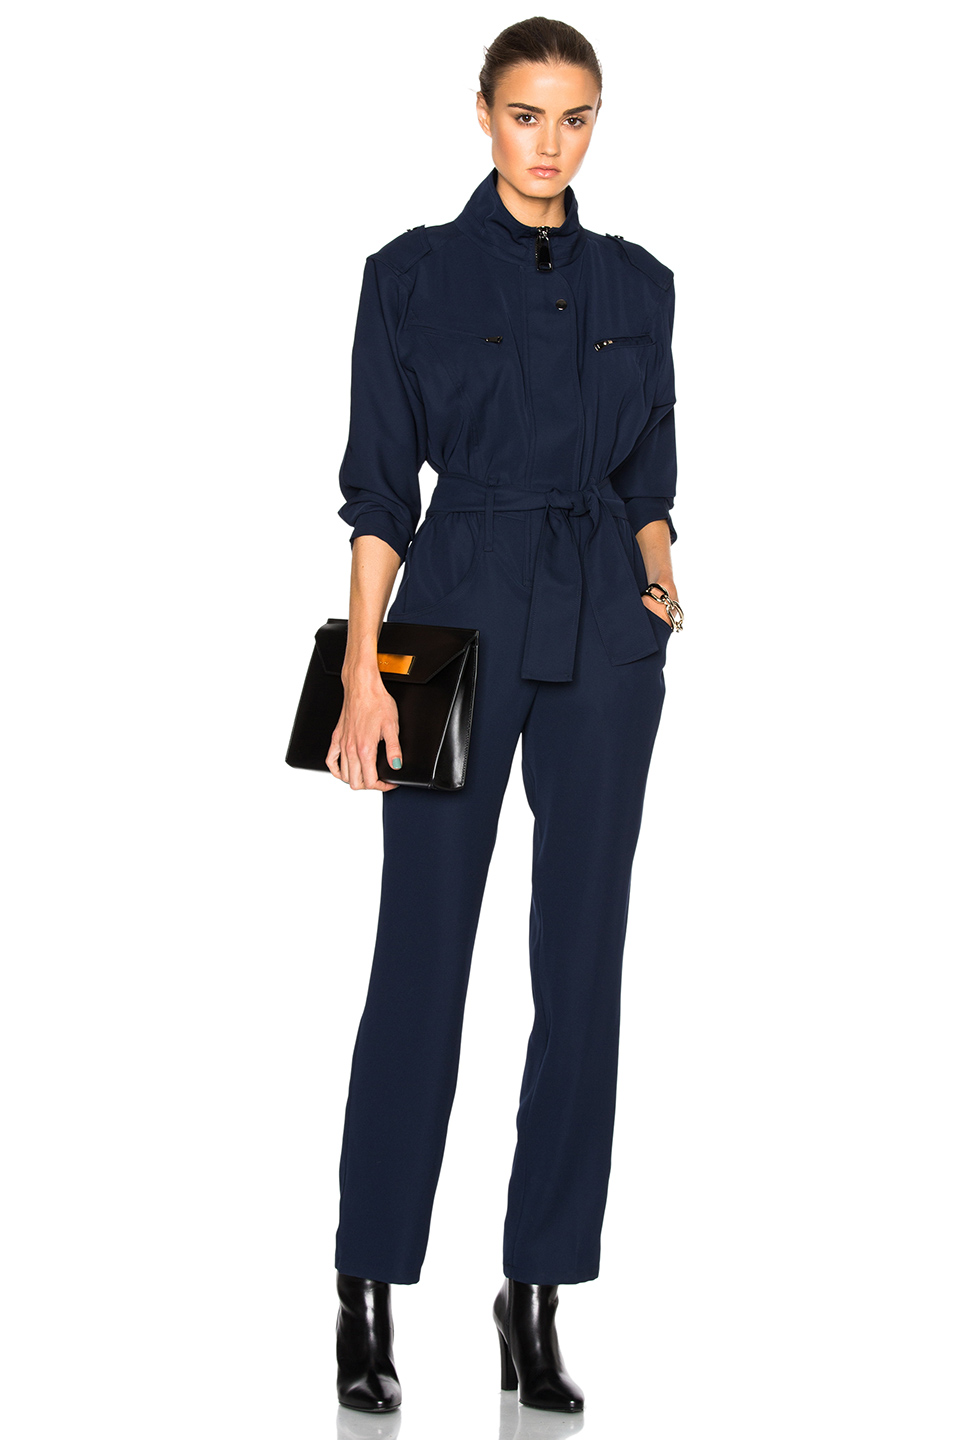 Carolina Ritzler Belted Jumpsuit in Blue